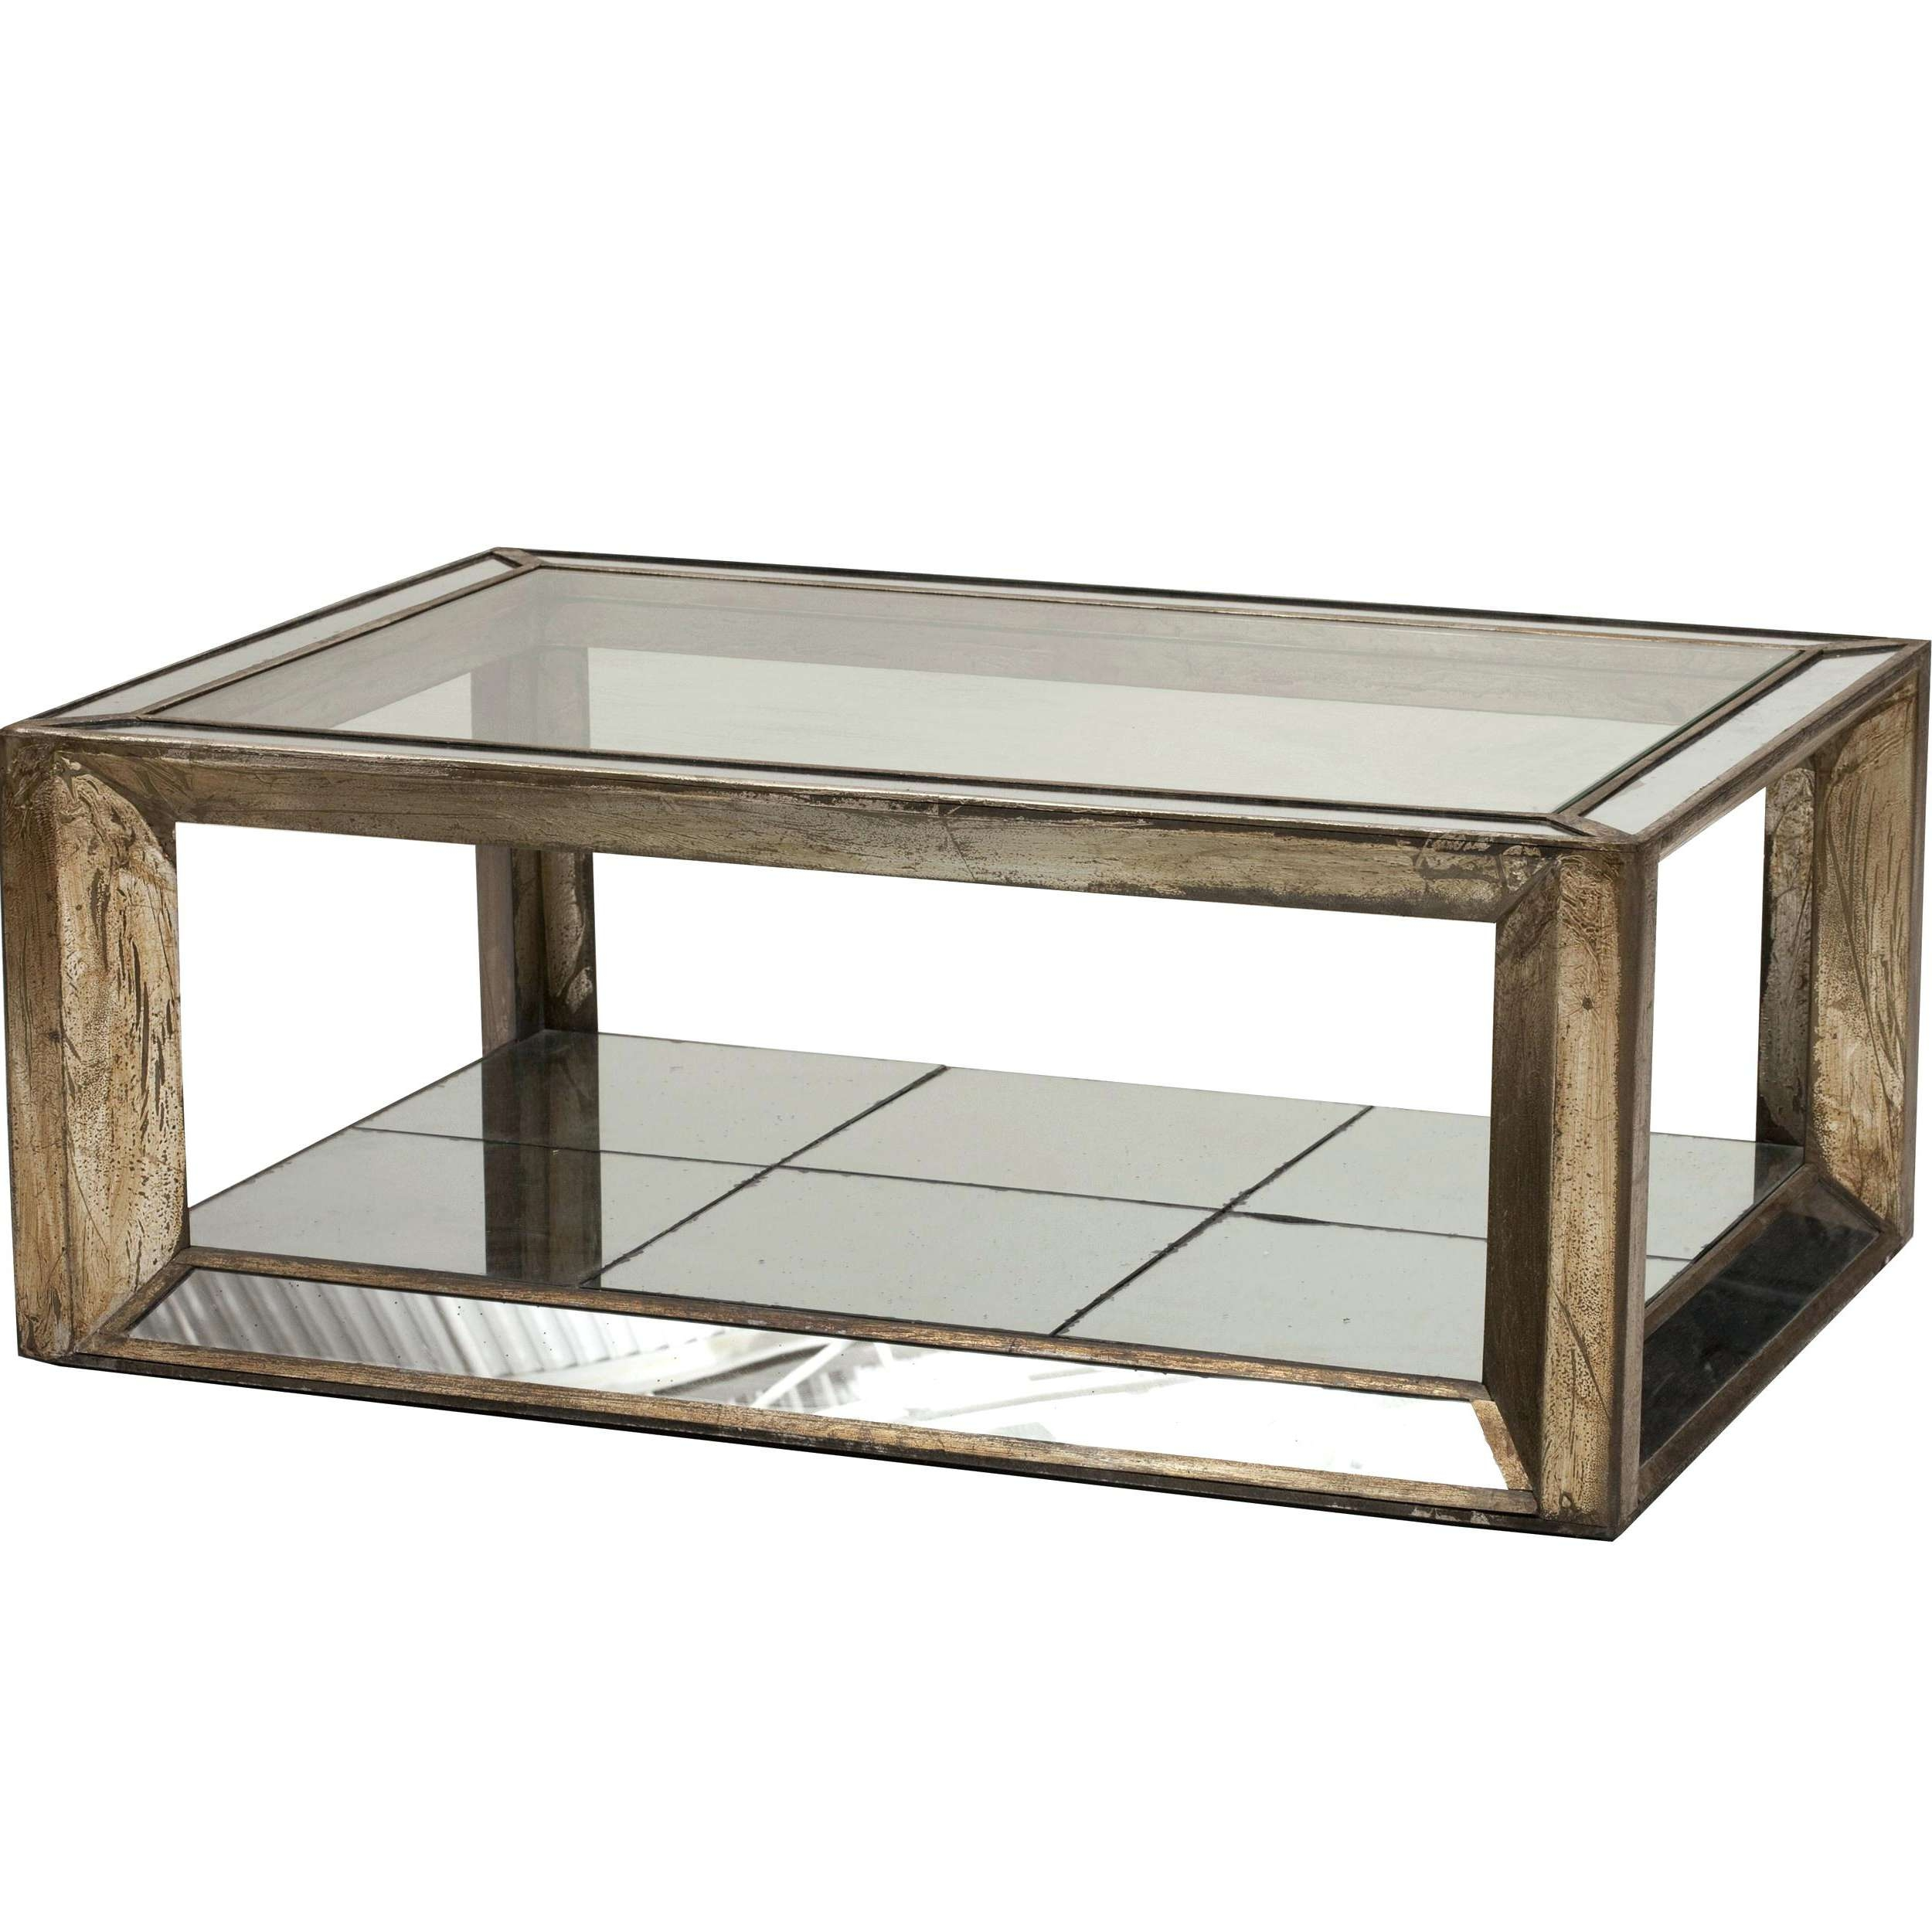 Newest Round Mirrored Coffee Tables Throughout Coffee Tables : Antique Mirrored Coffee Tables Awesome Round Table (Gallery 20 of 20)